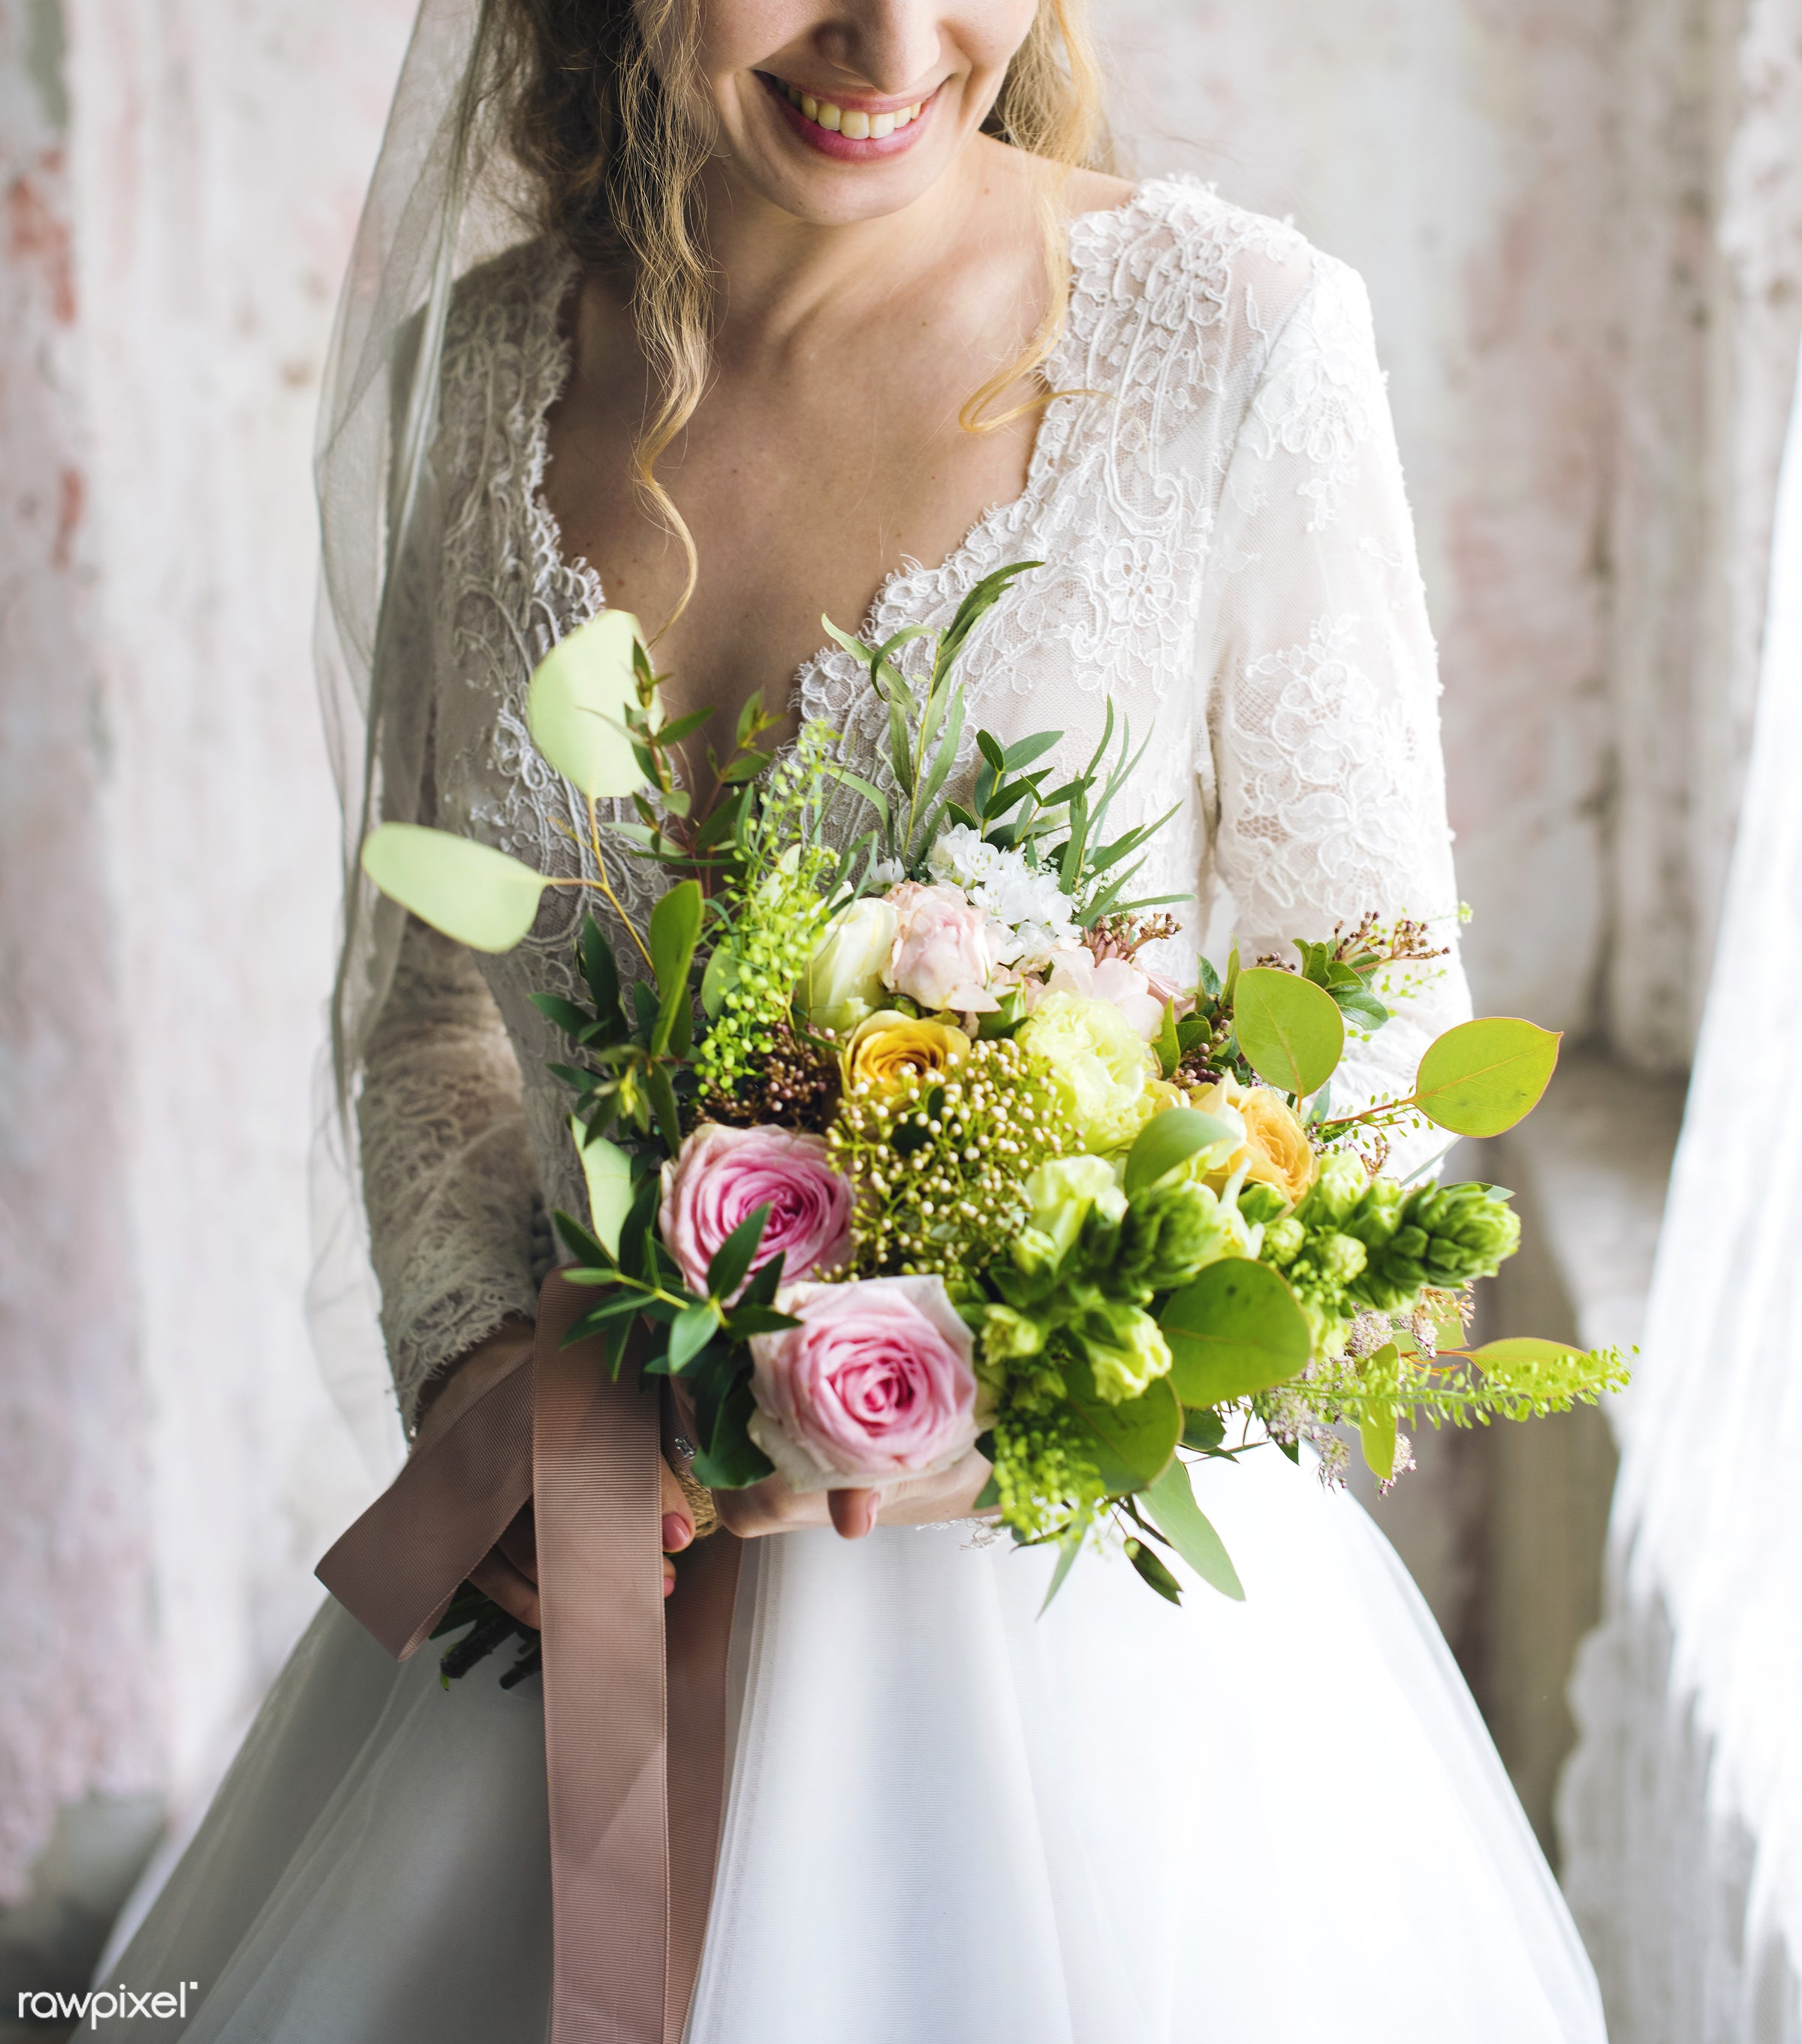 bouquet, person, holding, people, caucasian, glamour, love, woman, gown, flowers, cheerful, marry, preparation, white,...